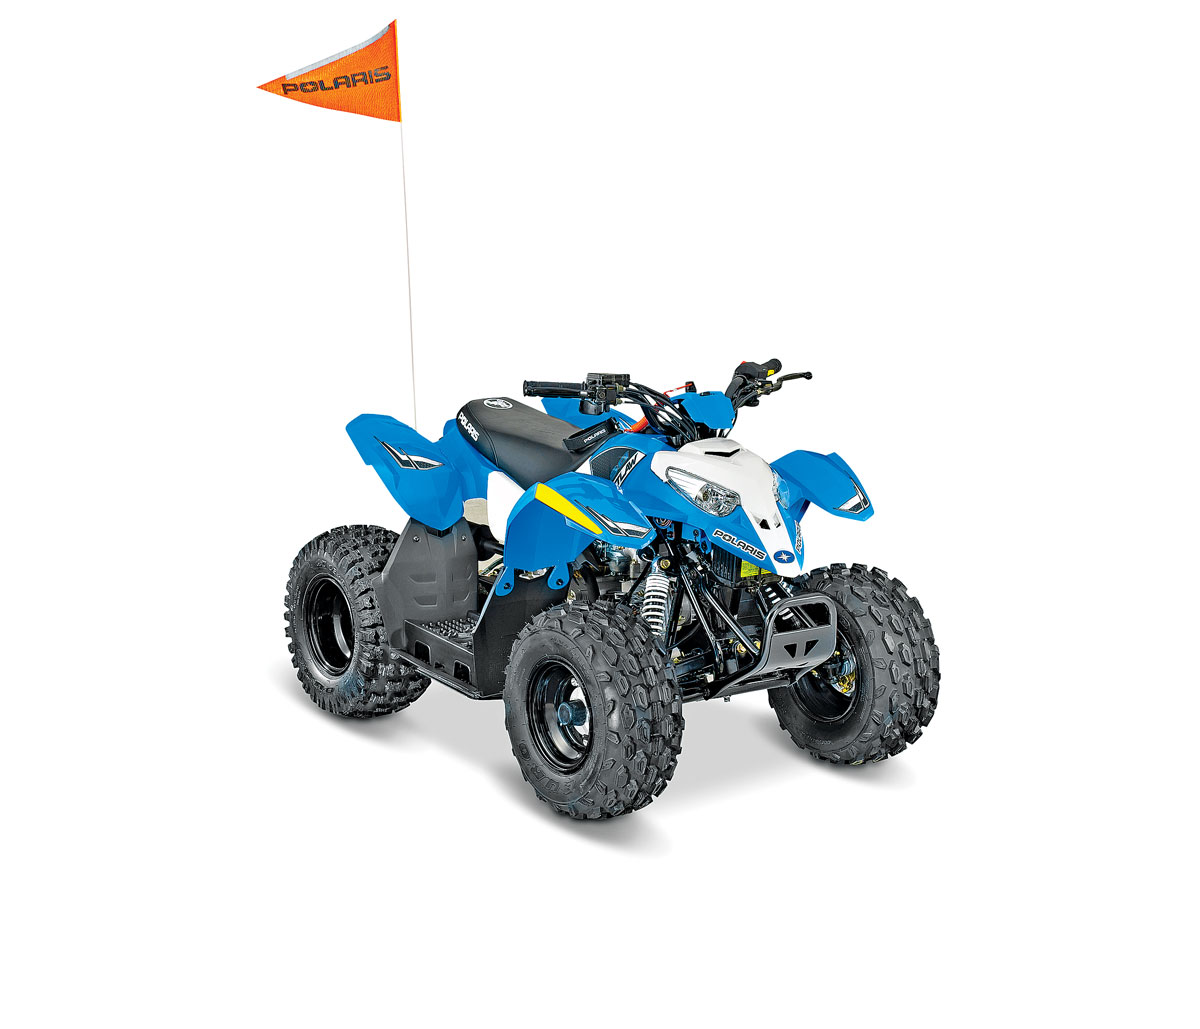 hight resolution of polaris outlaw 50 the outlaw 50 is an easy to ride kids machine that comes with some great extras like a helmet safety flag and a how to ride dvd